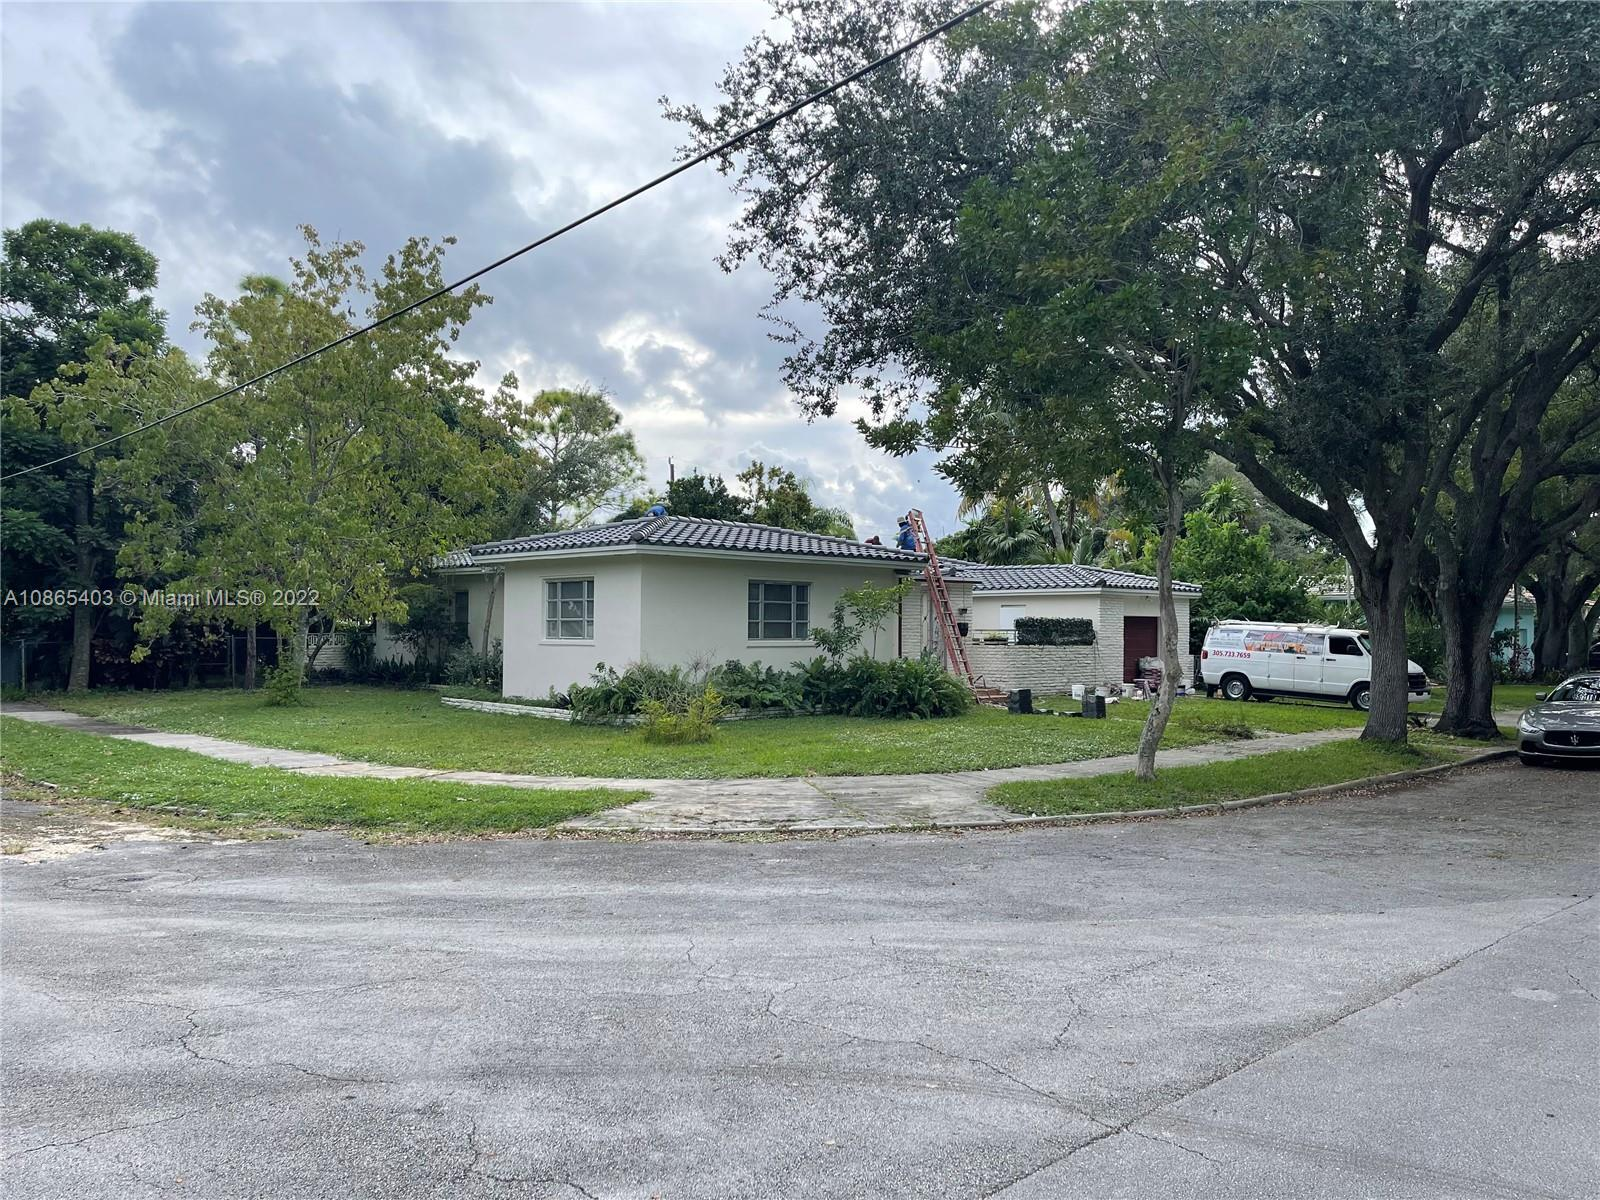 Miami Shores - 102 NW 105th St, Miami Shores, FL 33150